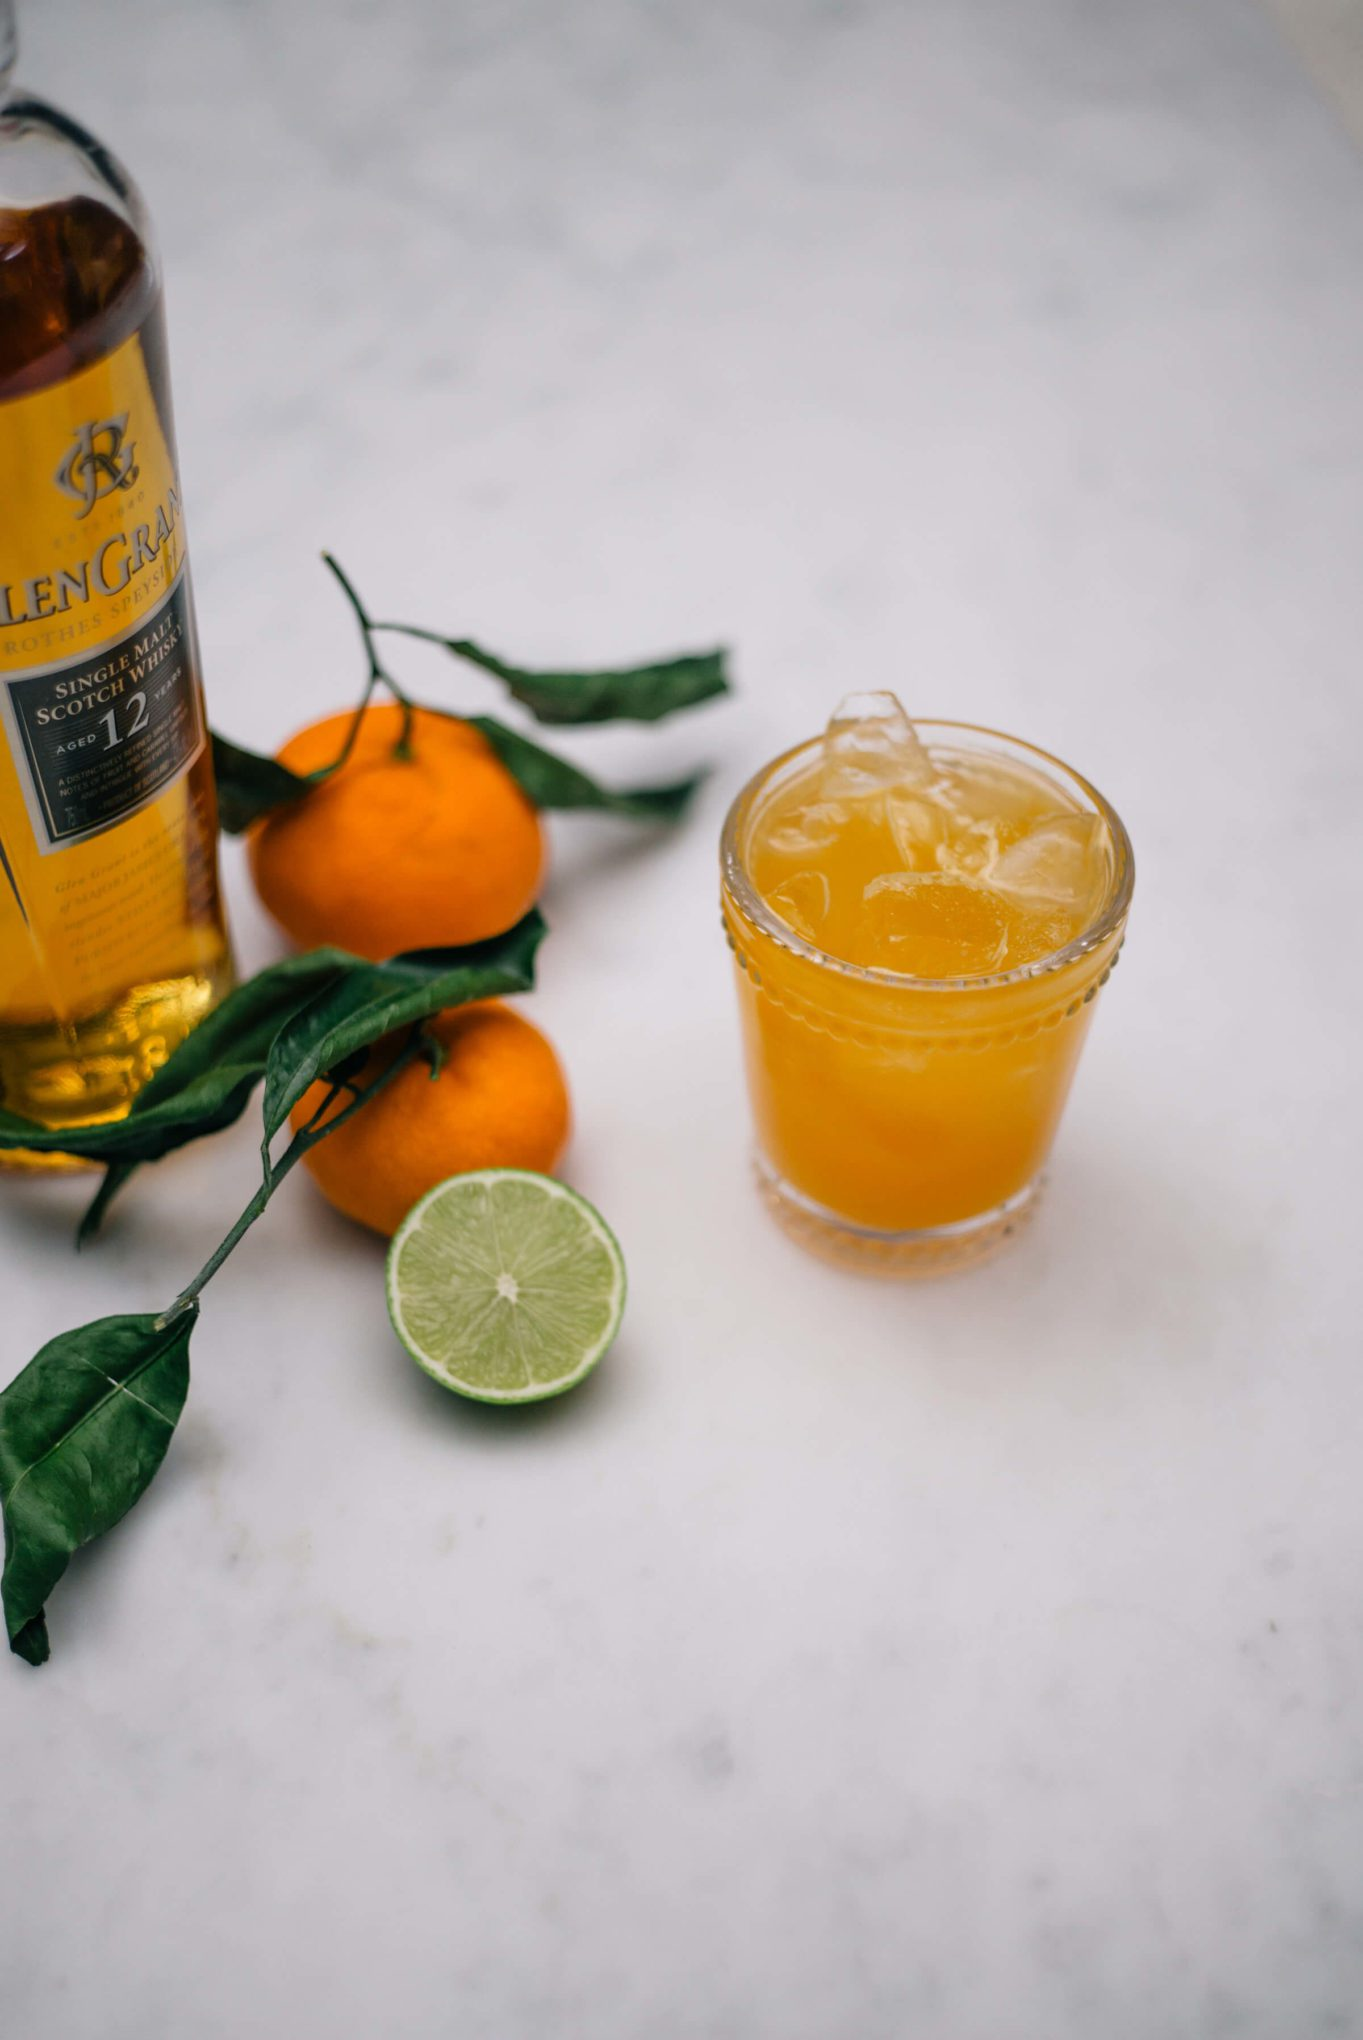 The Taste SF makes an Indian Summer Cocktail made with scotch and clementines